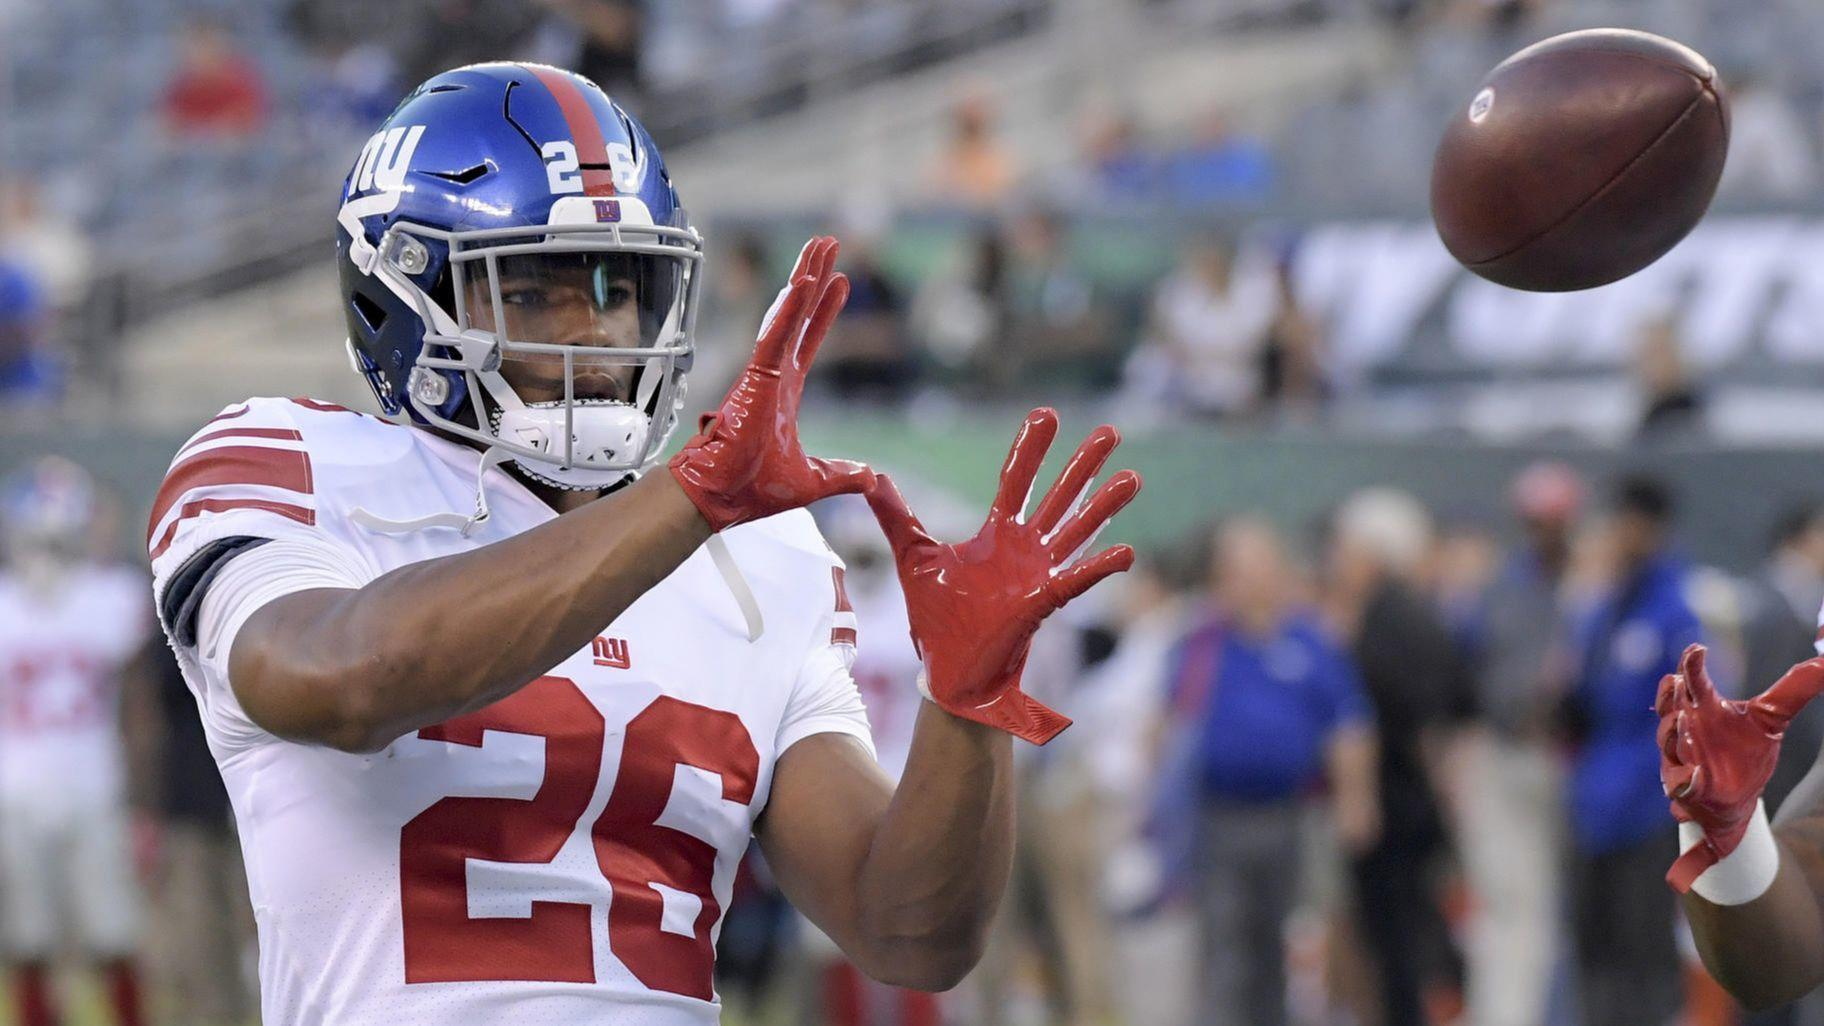 Rookie Saquon Barkley has top-selling NFL jersey without playing a down 4b8f61608